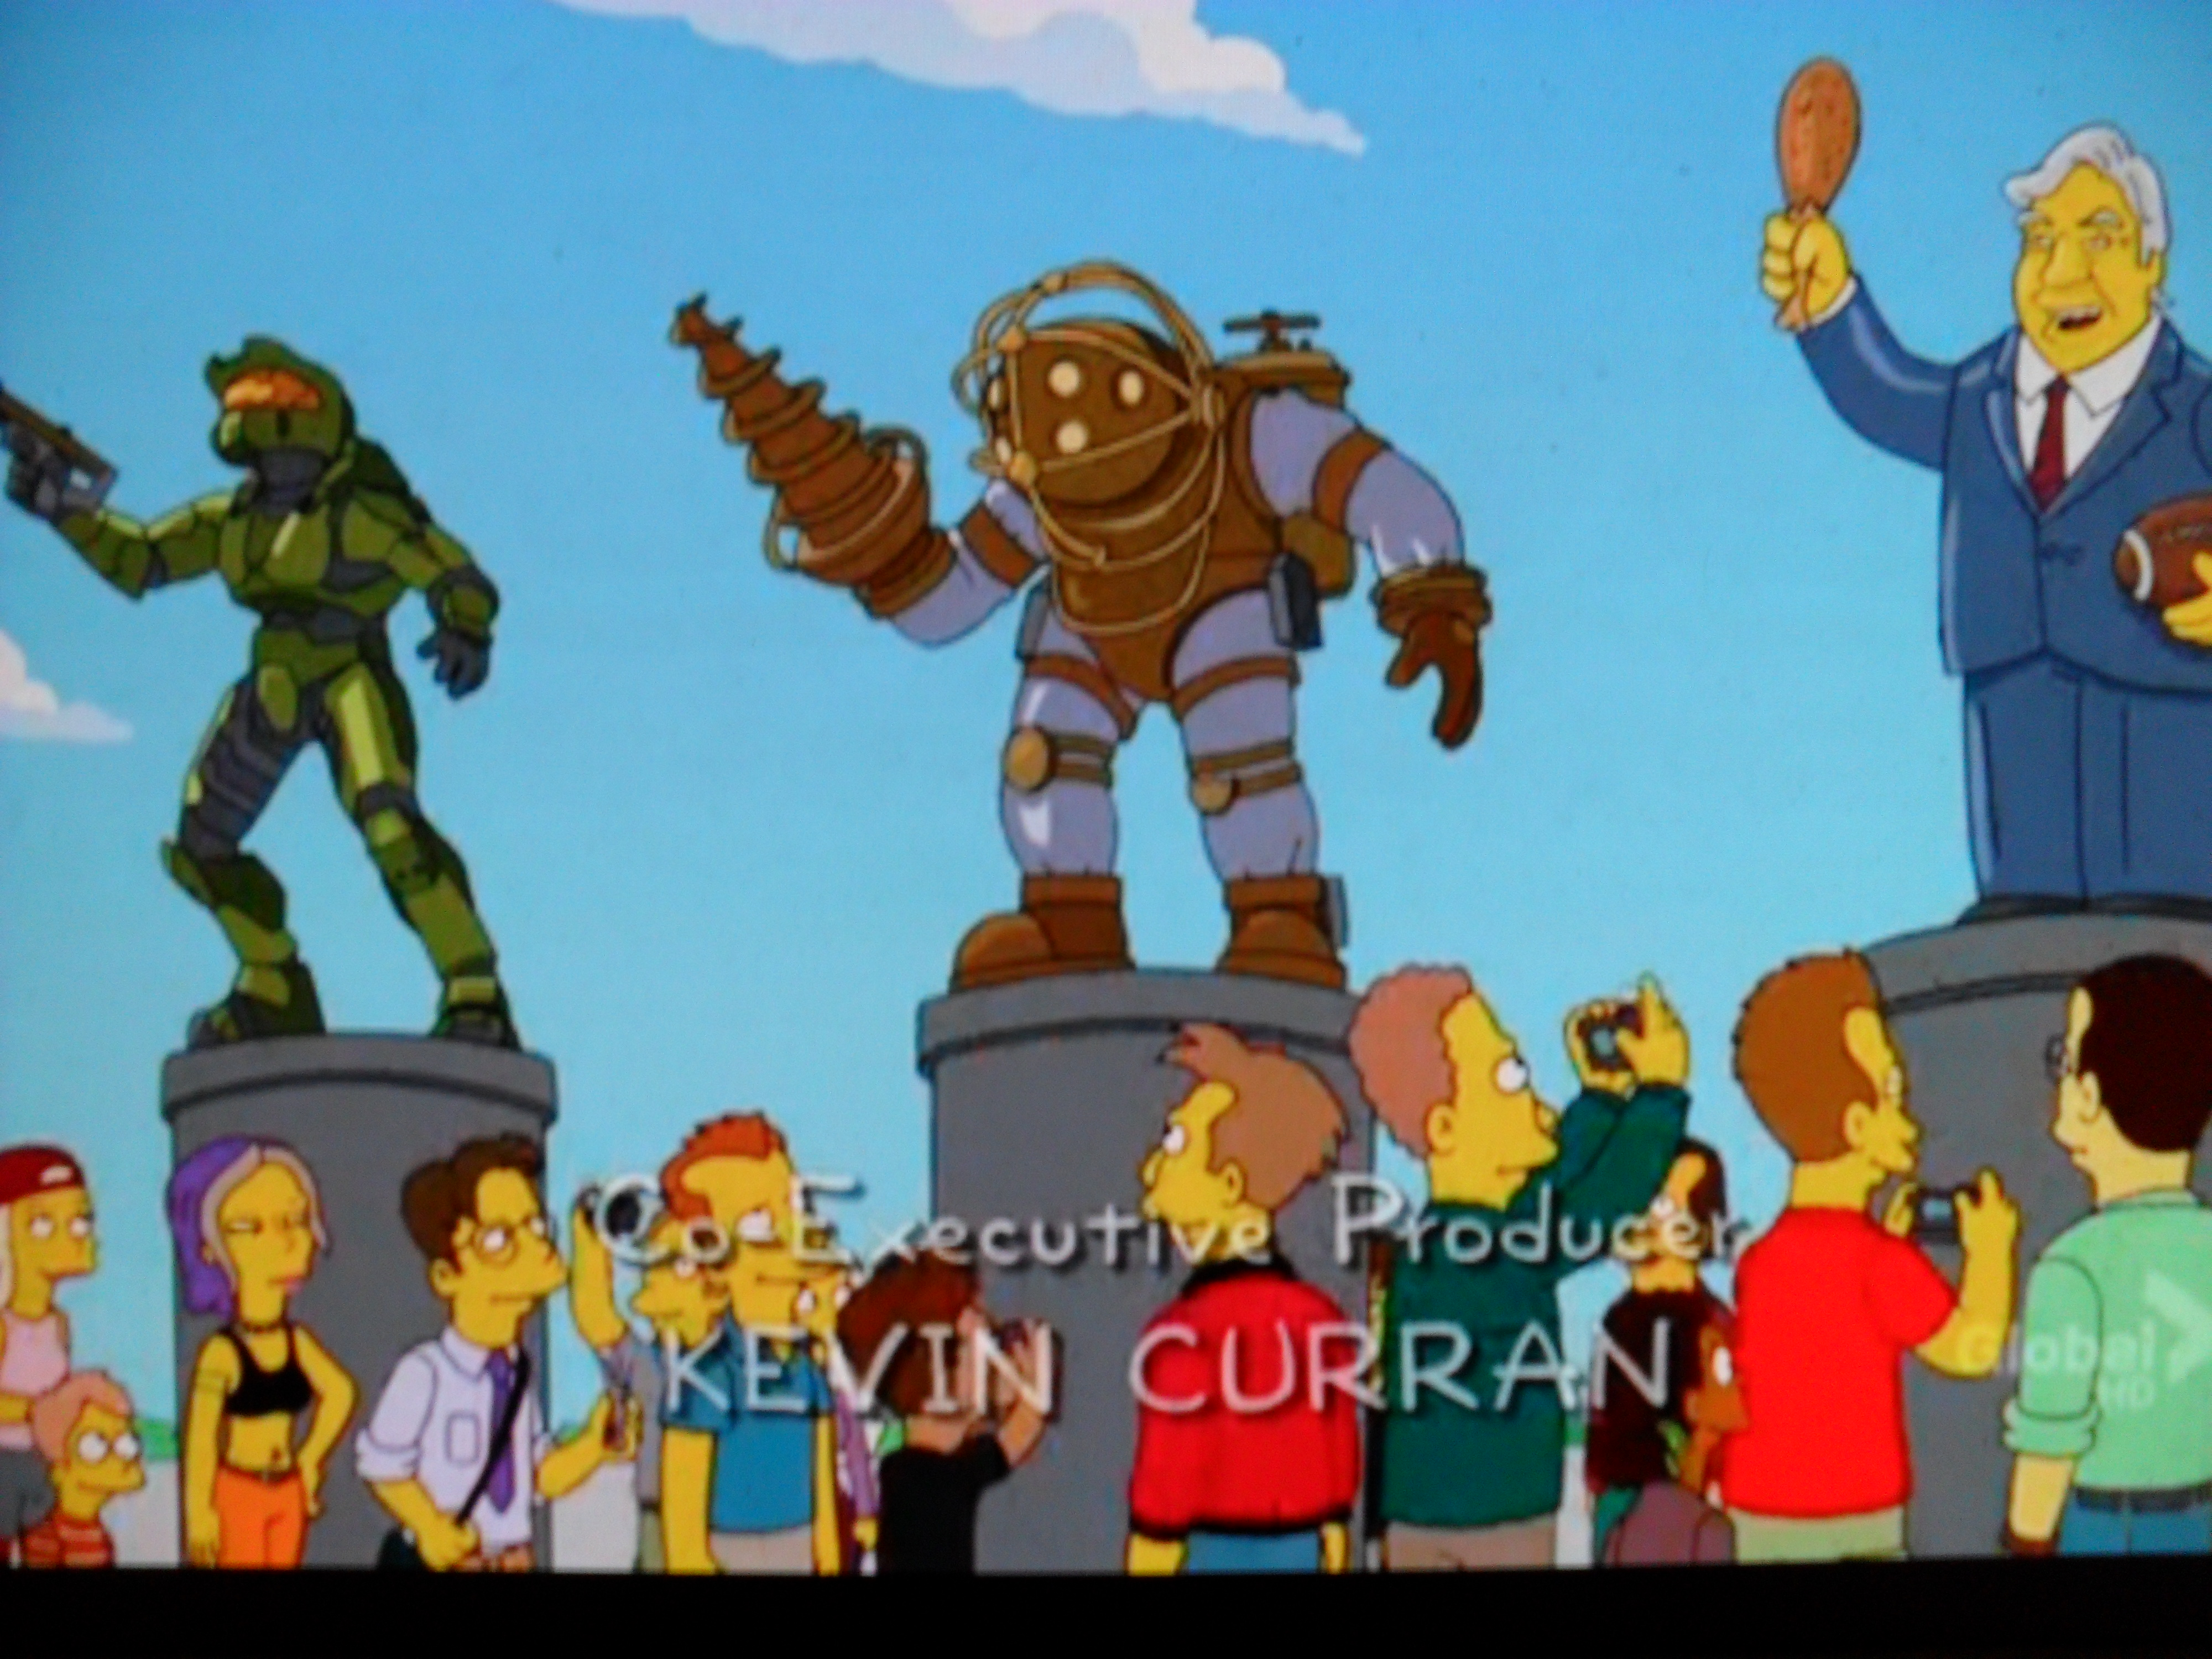 Evans0305/BioShock's Big Daddy Bouncer makes an appearance on The Simpsons